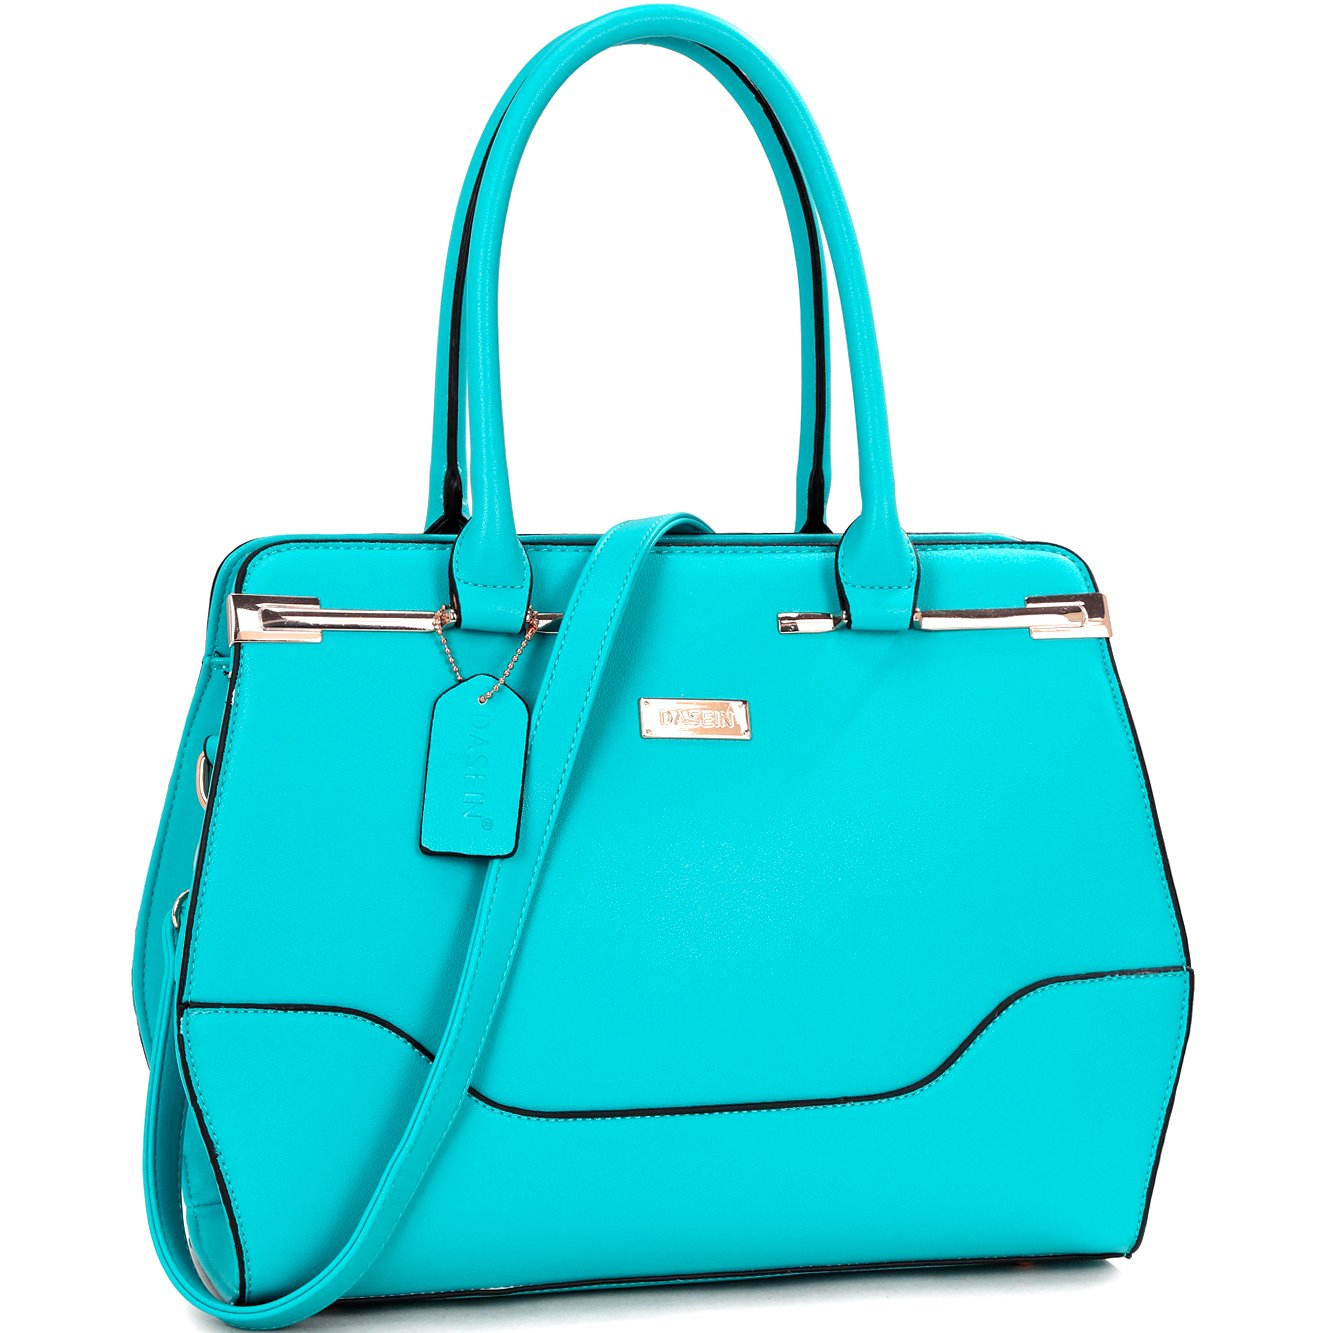 Top Handle Handbag Zip Purse Fashion Shoulder Bag Structured Crossbody Satchel Vegan Leather Blue by Dasein (Image #1)